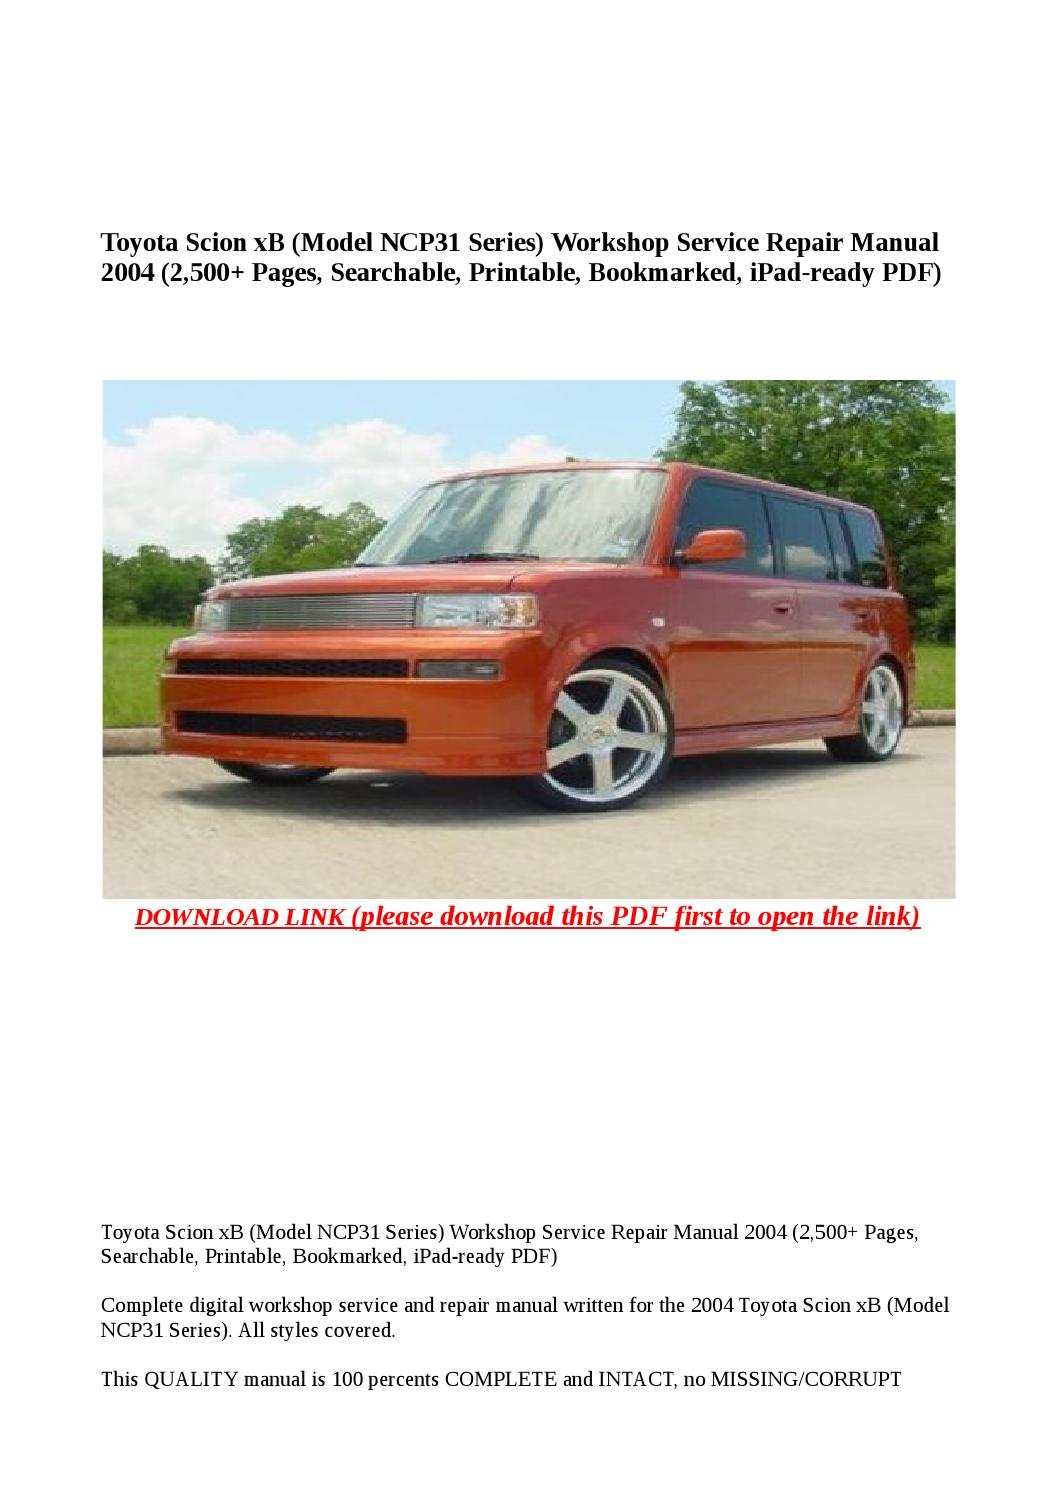 Toyota scion xb (model ncp31 series) workshop service repair manual 2004  (2,500 pages, searchable, p by buhbu - issuu